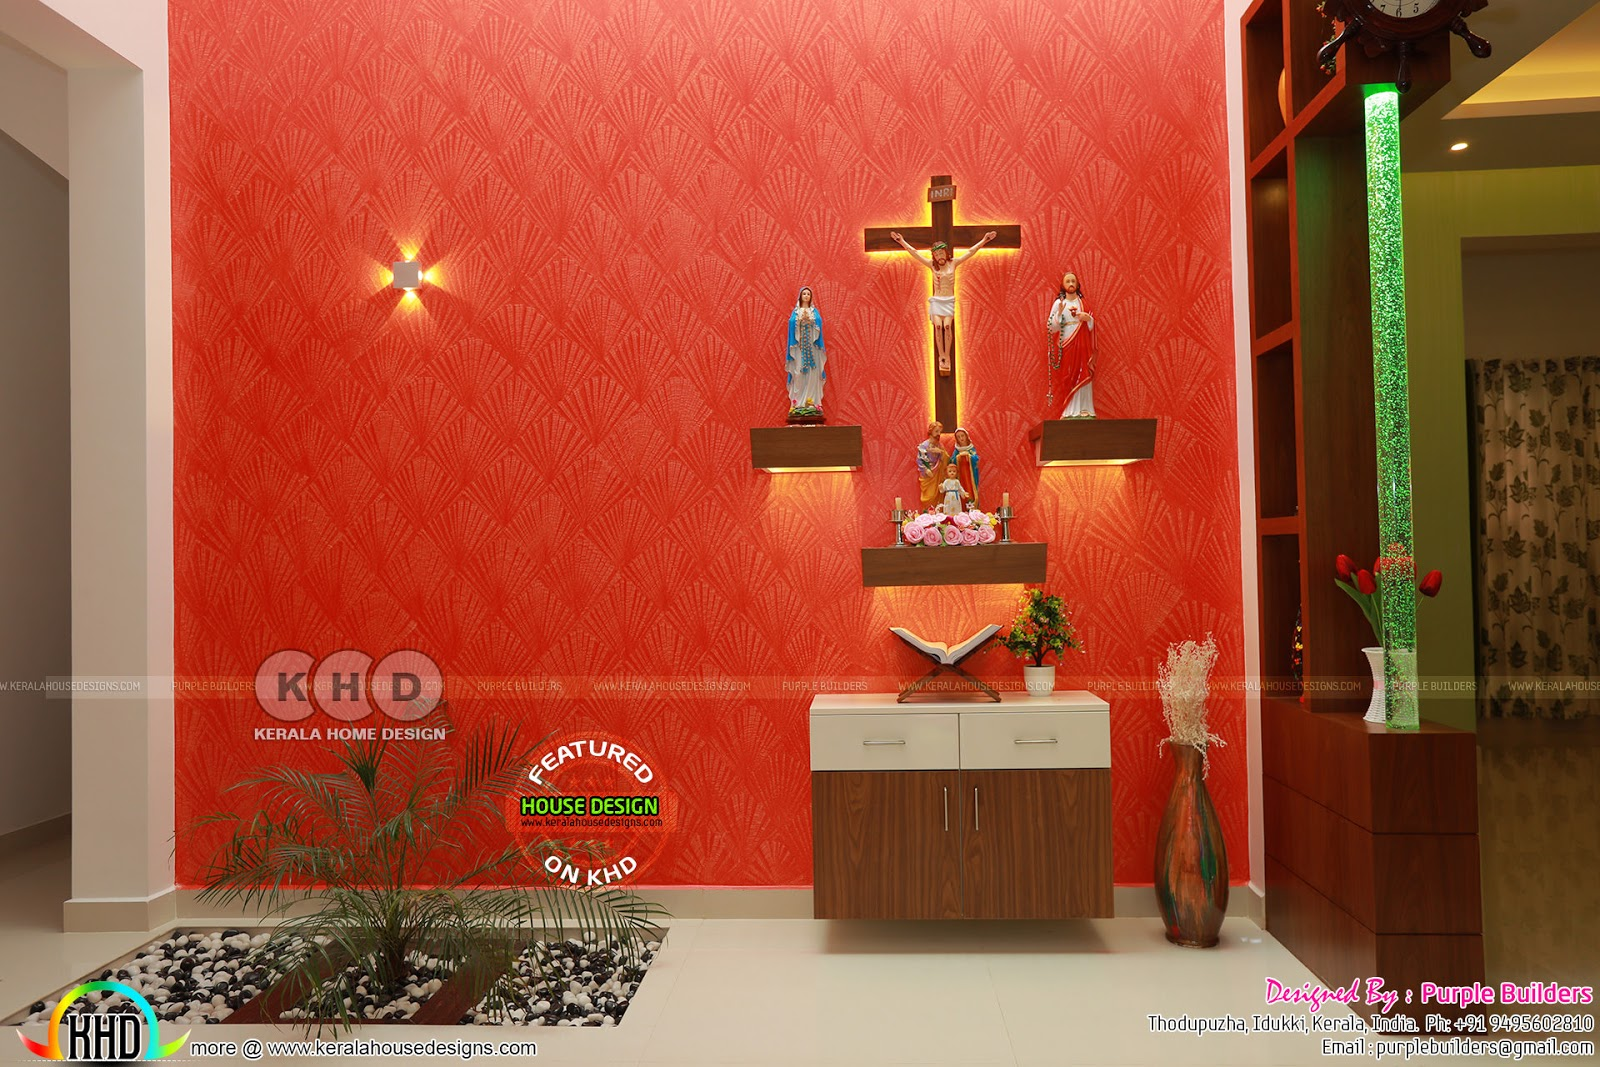 -prayer-room-home-kerala Kerala Home Plans With Front Porch on home plans with study, home plans with carport, home plans with windows, home plans with vaulted ceilings, home plans with den, home plans with front portico, home plans with covered patio, home plans with exterior, home plans with library, home plans with rooftop deck, home plans with side porch, home plans with barn, home plans with large rooms, home plans with pool, home plans with breakfast nook, home plans with french doors, home plans with basement, home plans with staircase, home plans with open floor plan, home plans with master bathroom,